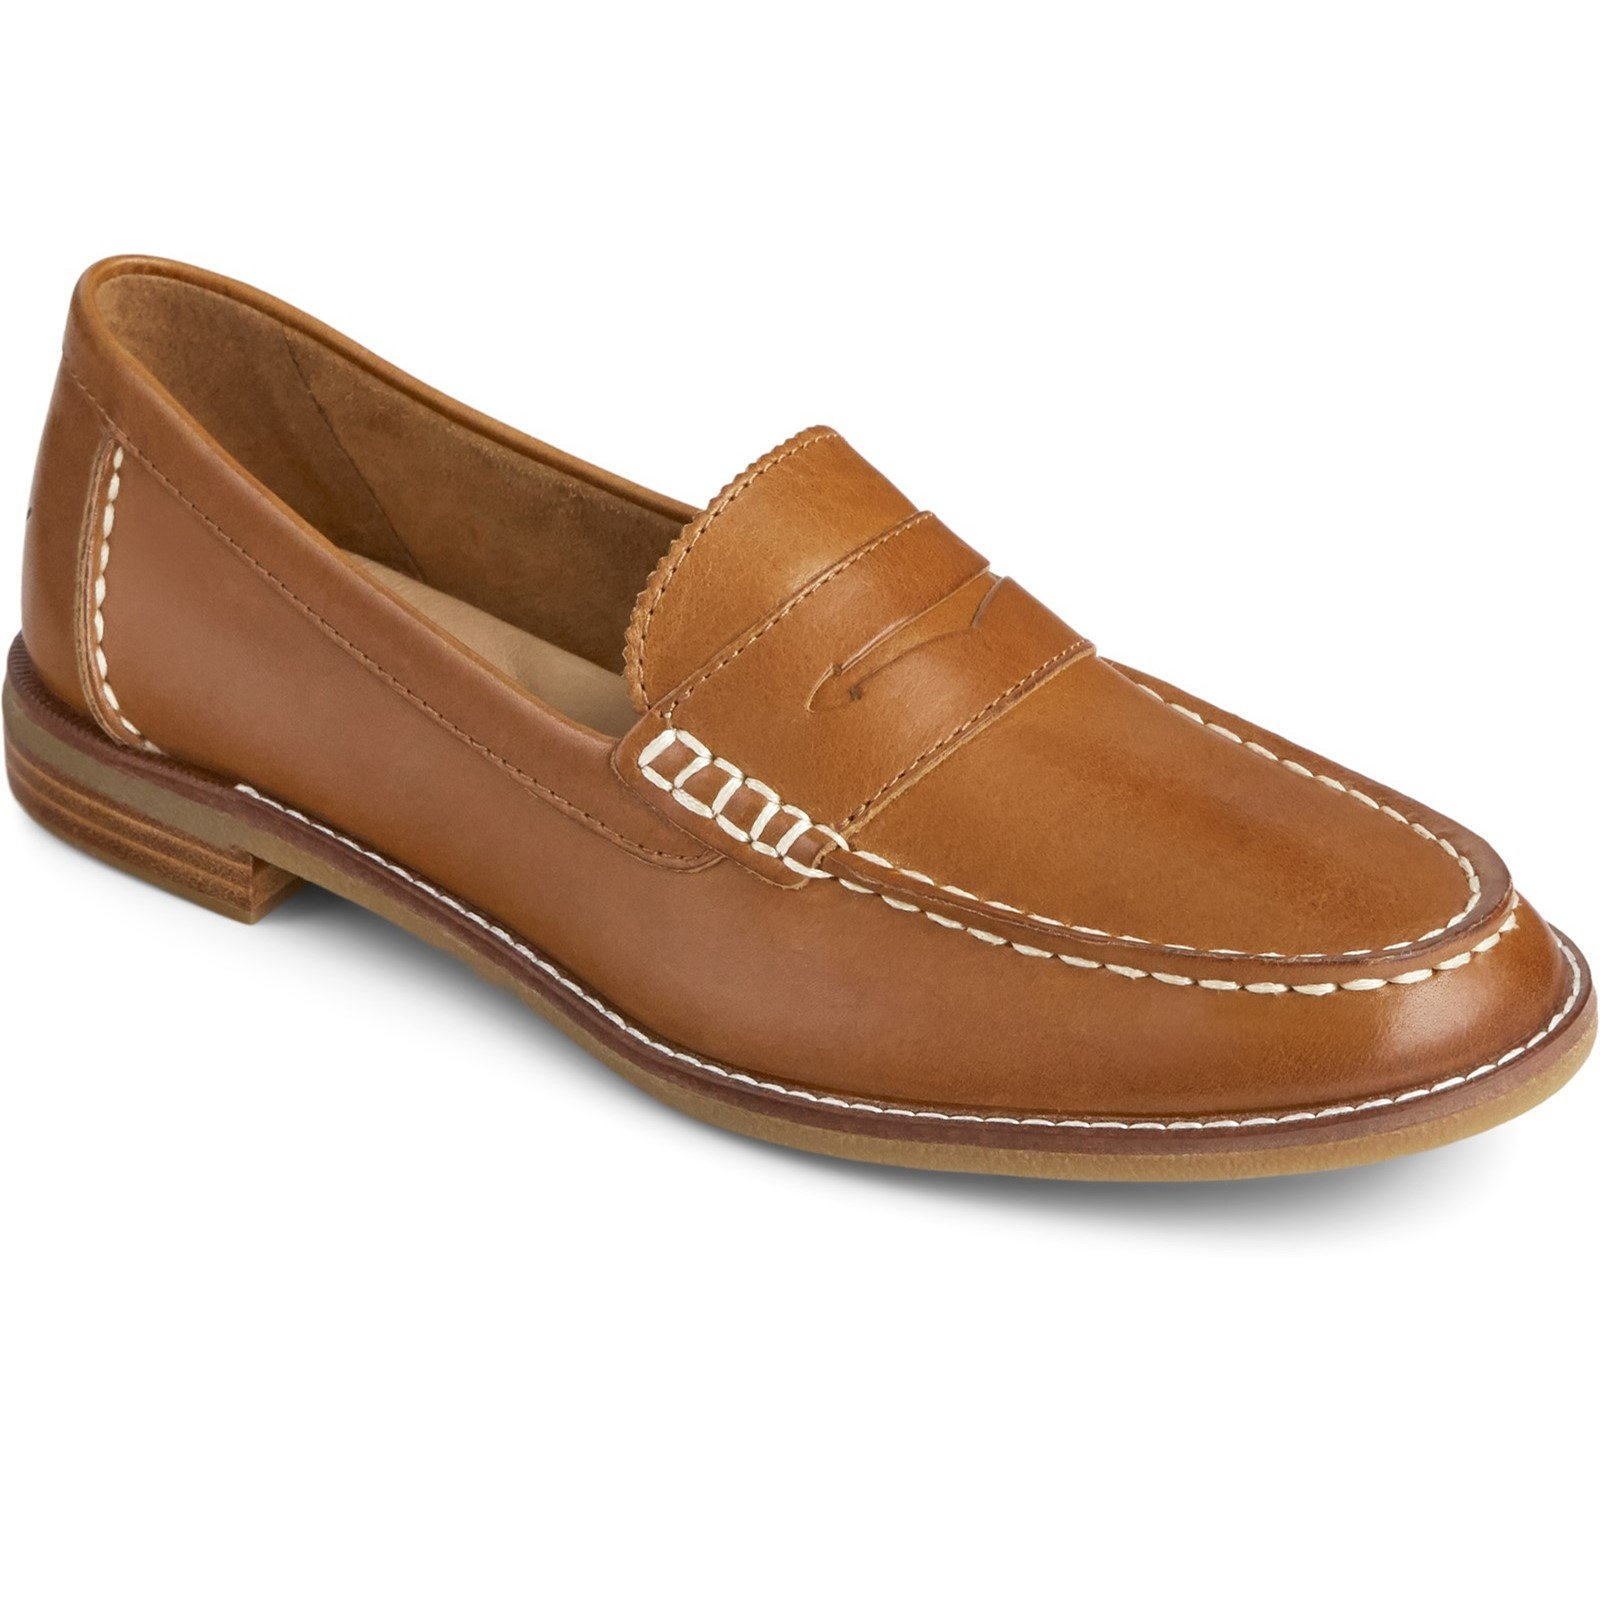 Sperry Women's Seaport Penny Loafer Various Colours 32403 - Tan 3